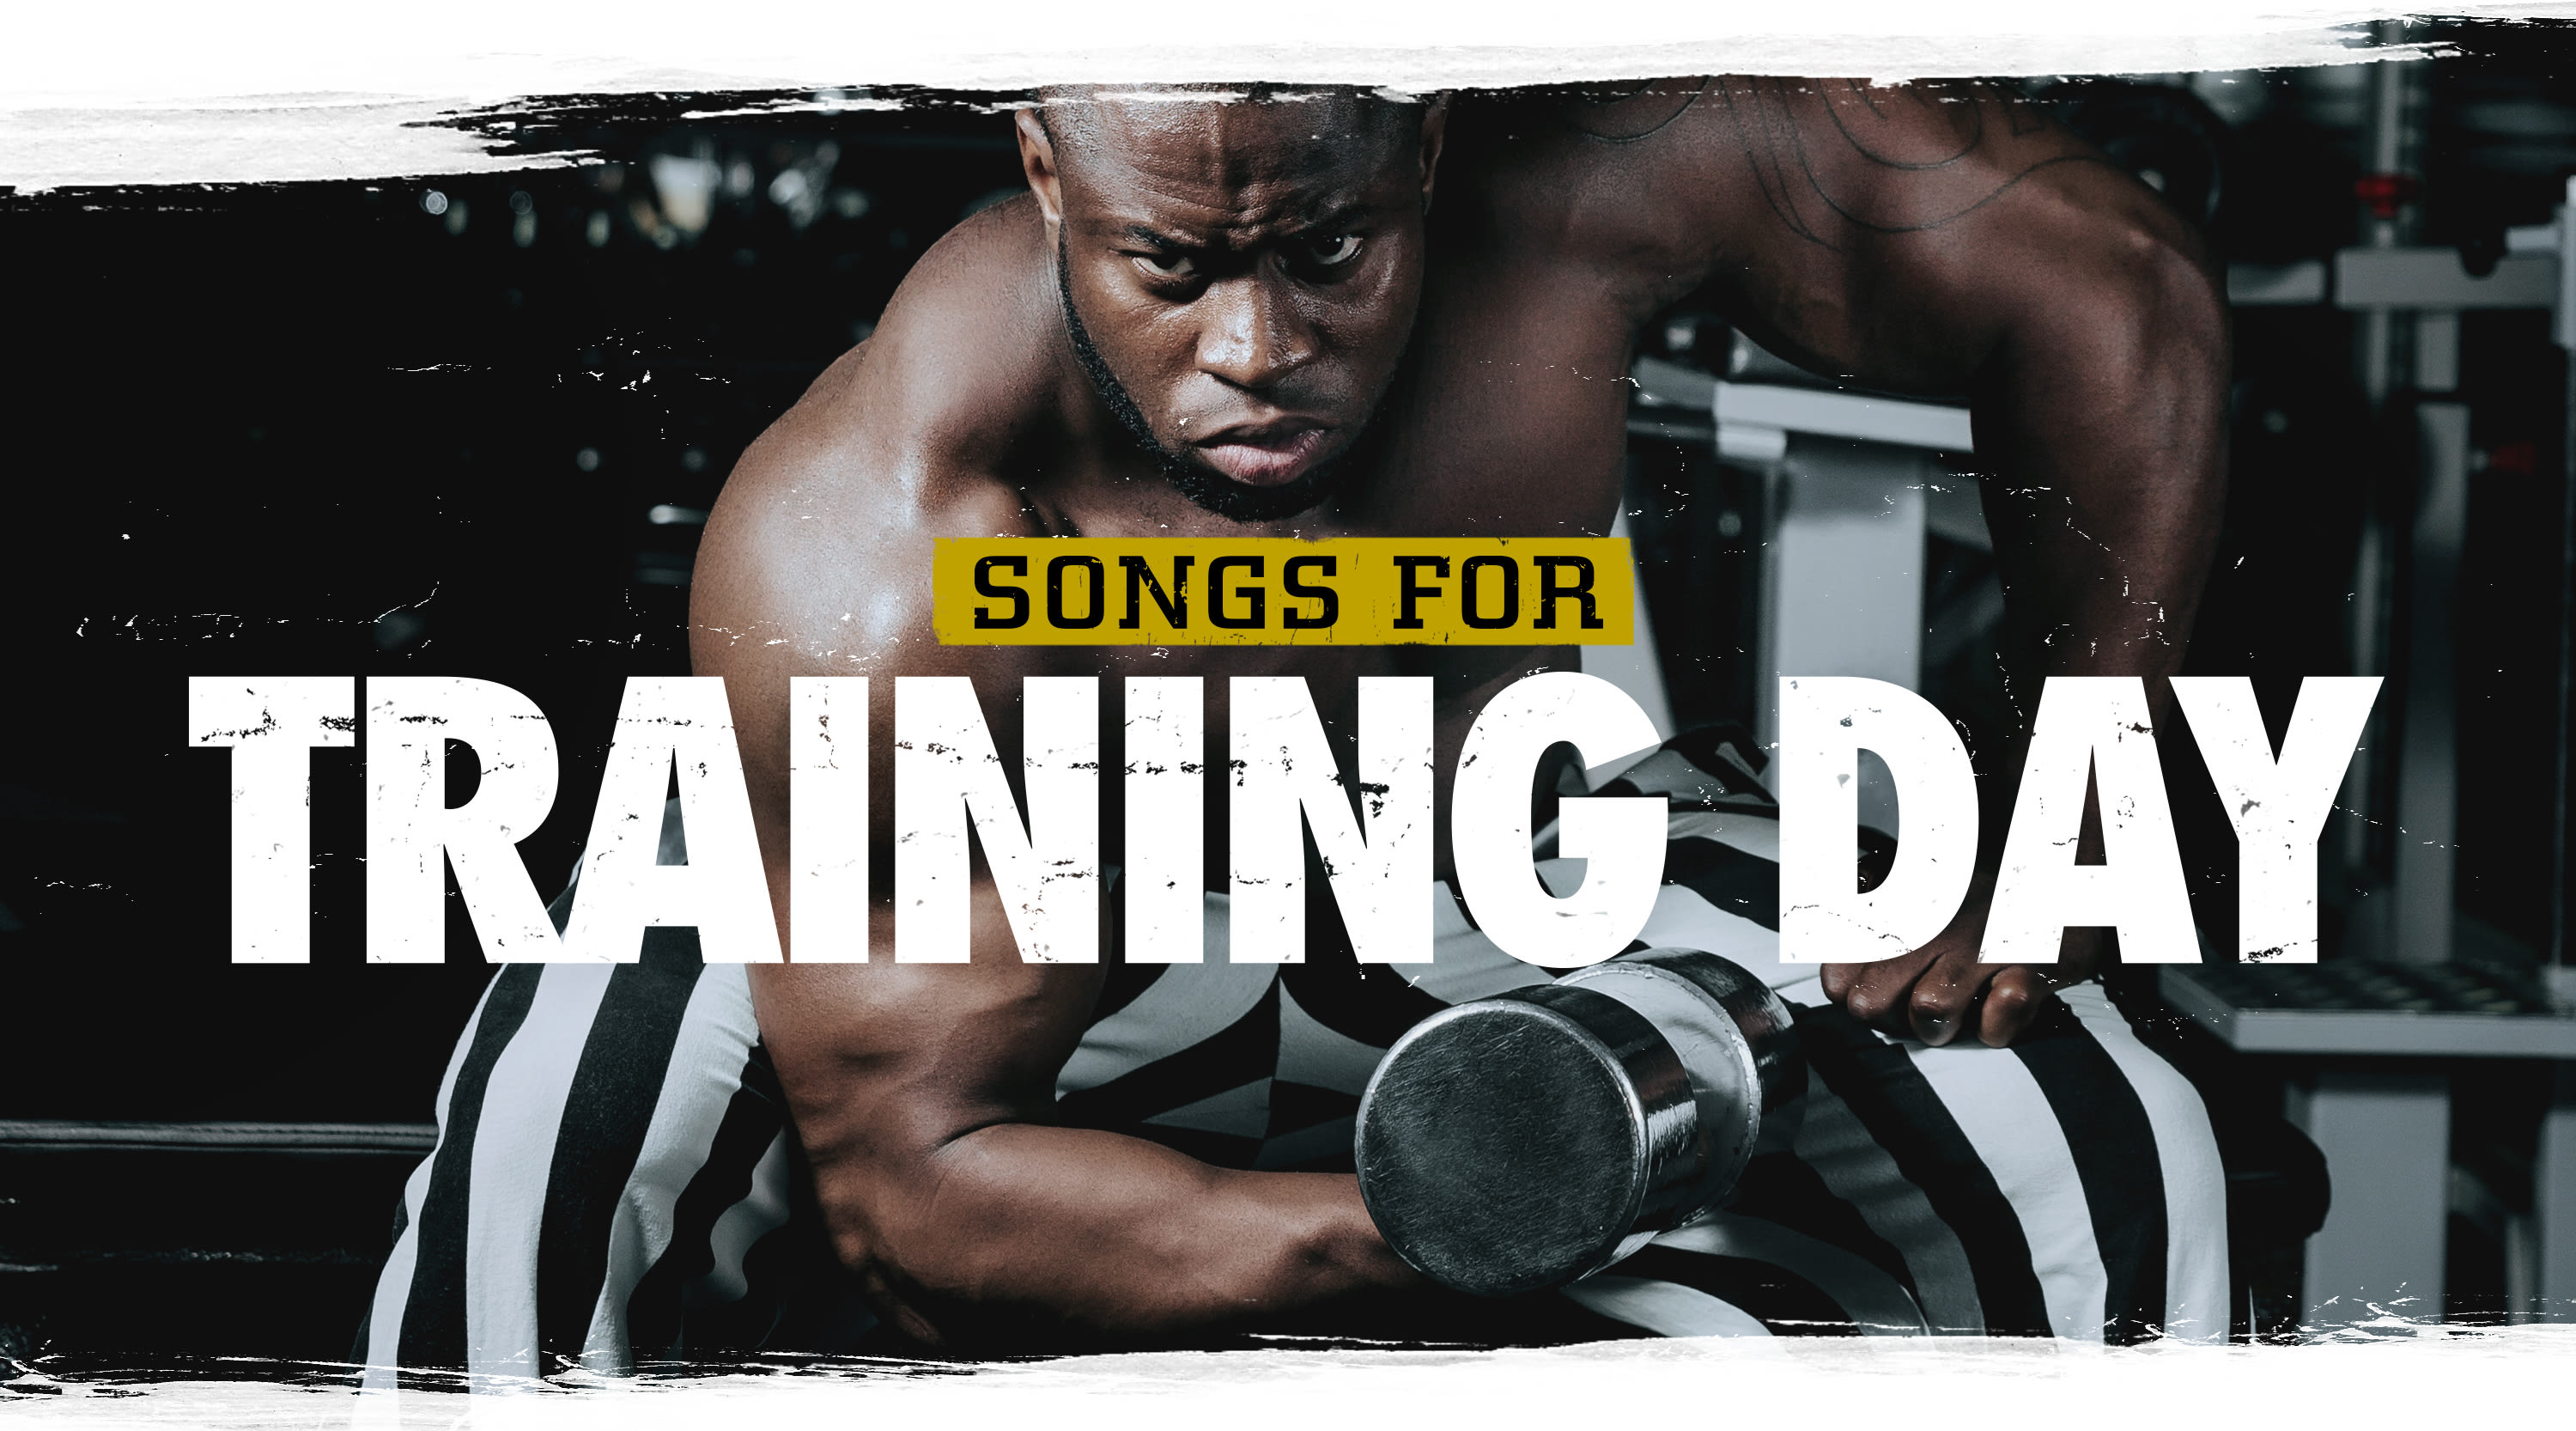 Songs for Training Day